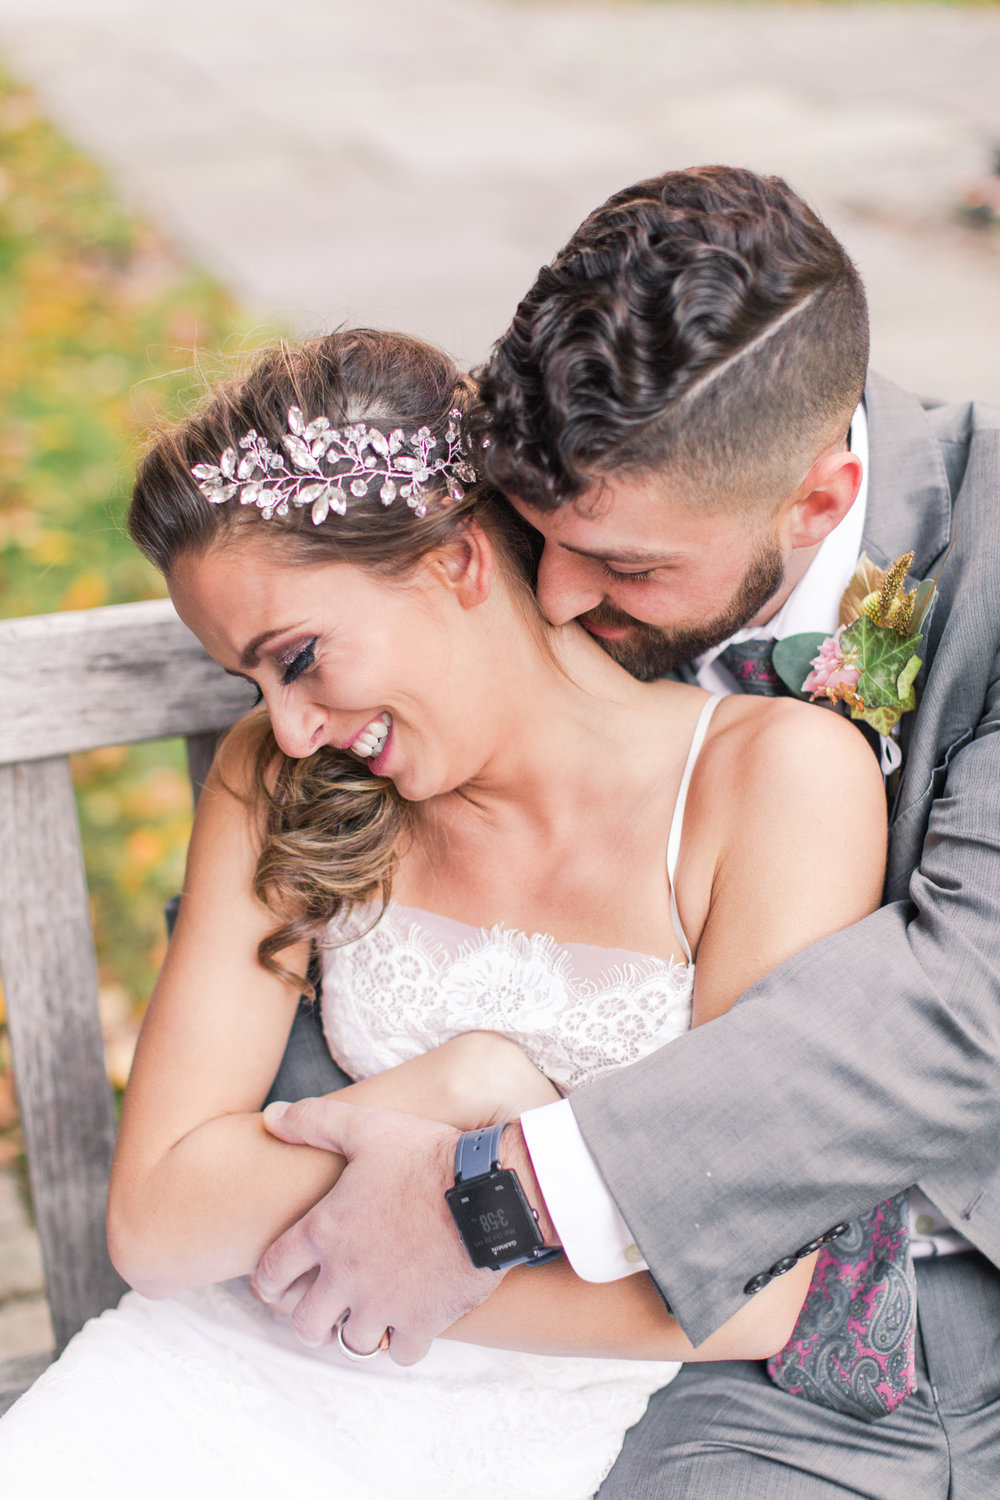 cute bride and groom photos of snuggle time! So cute. Pearl Weddings and Events